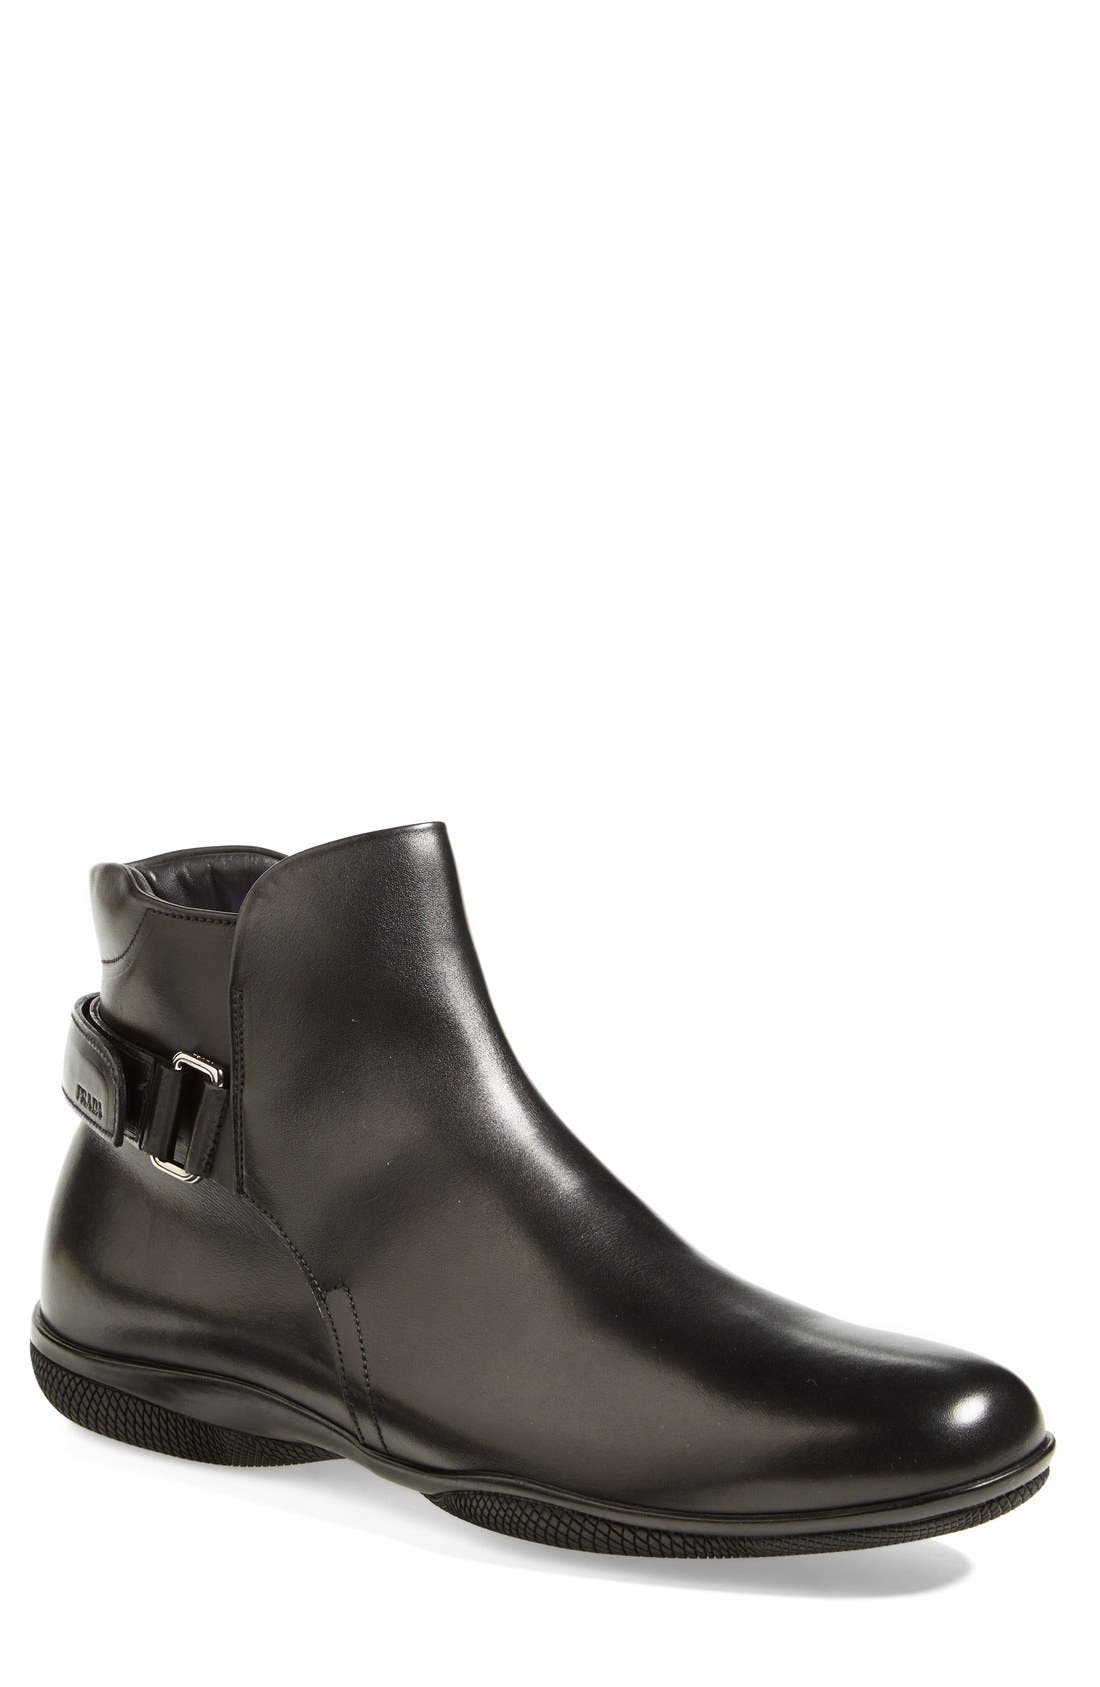 Main Image - Prada 'Toblak' Plain Toe Boot (Men)